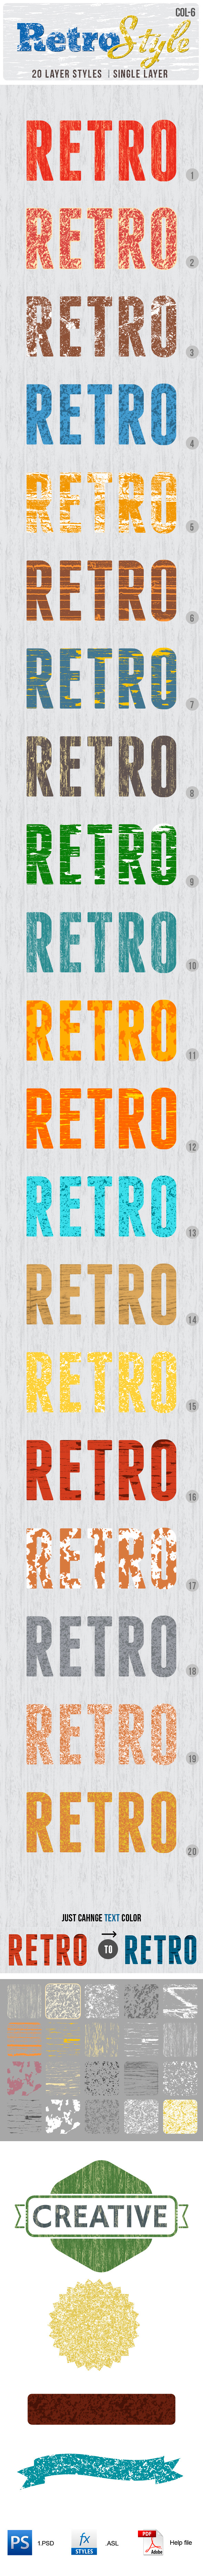 Retro Layer Styles